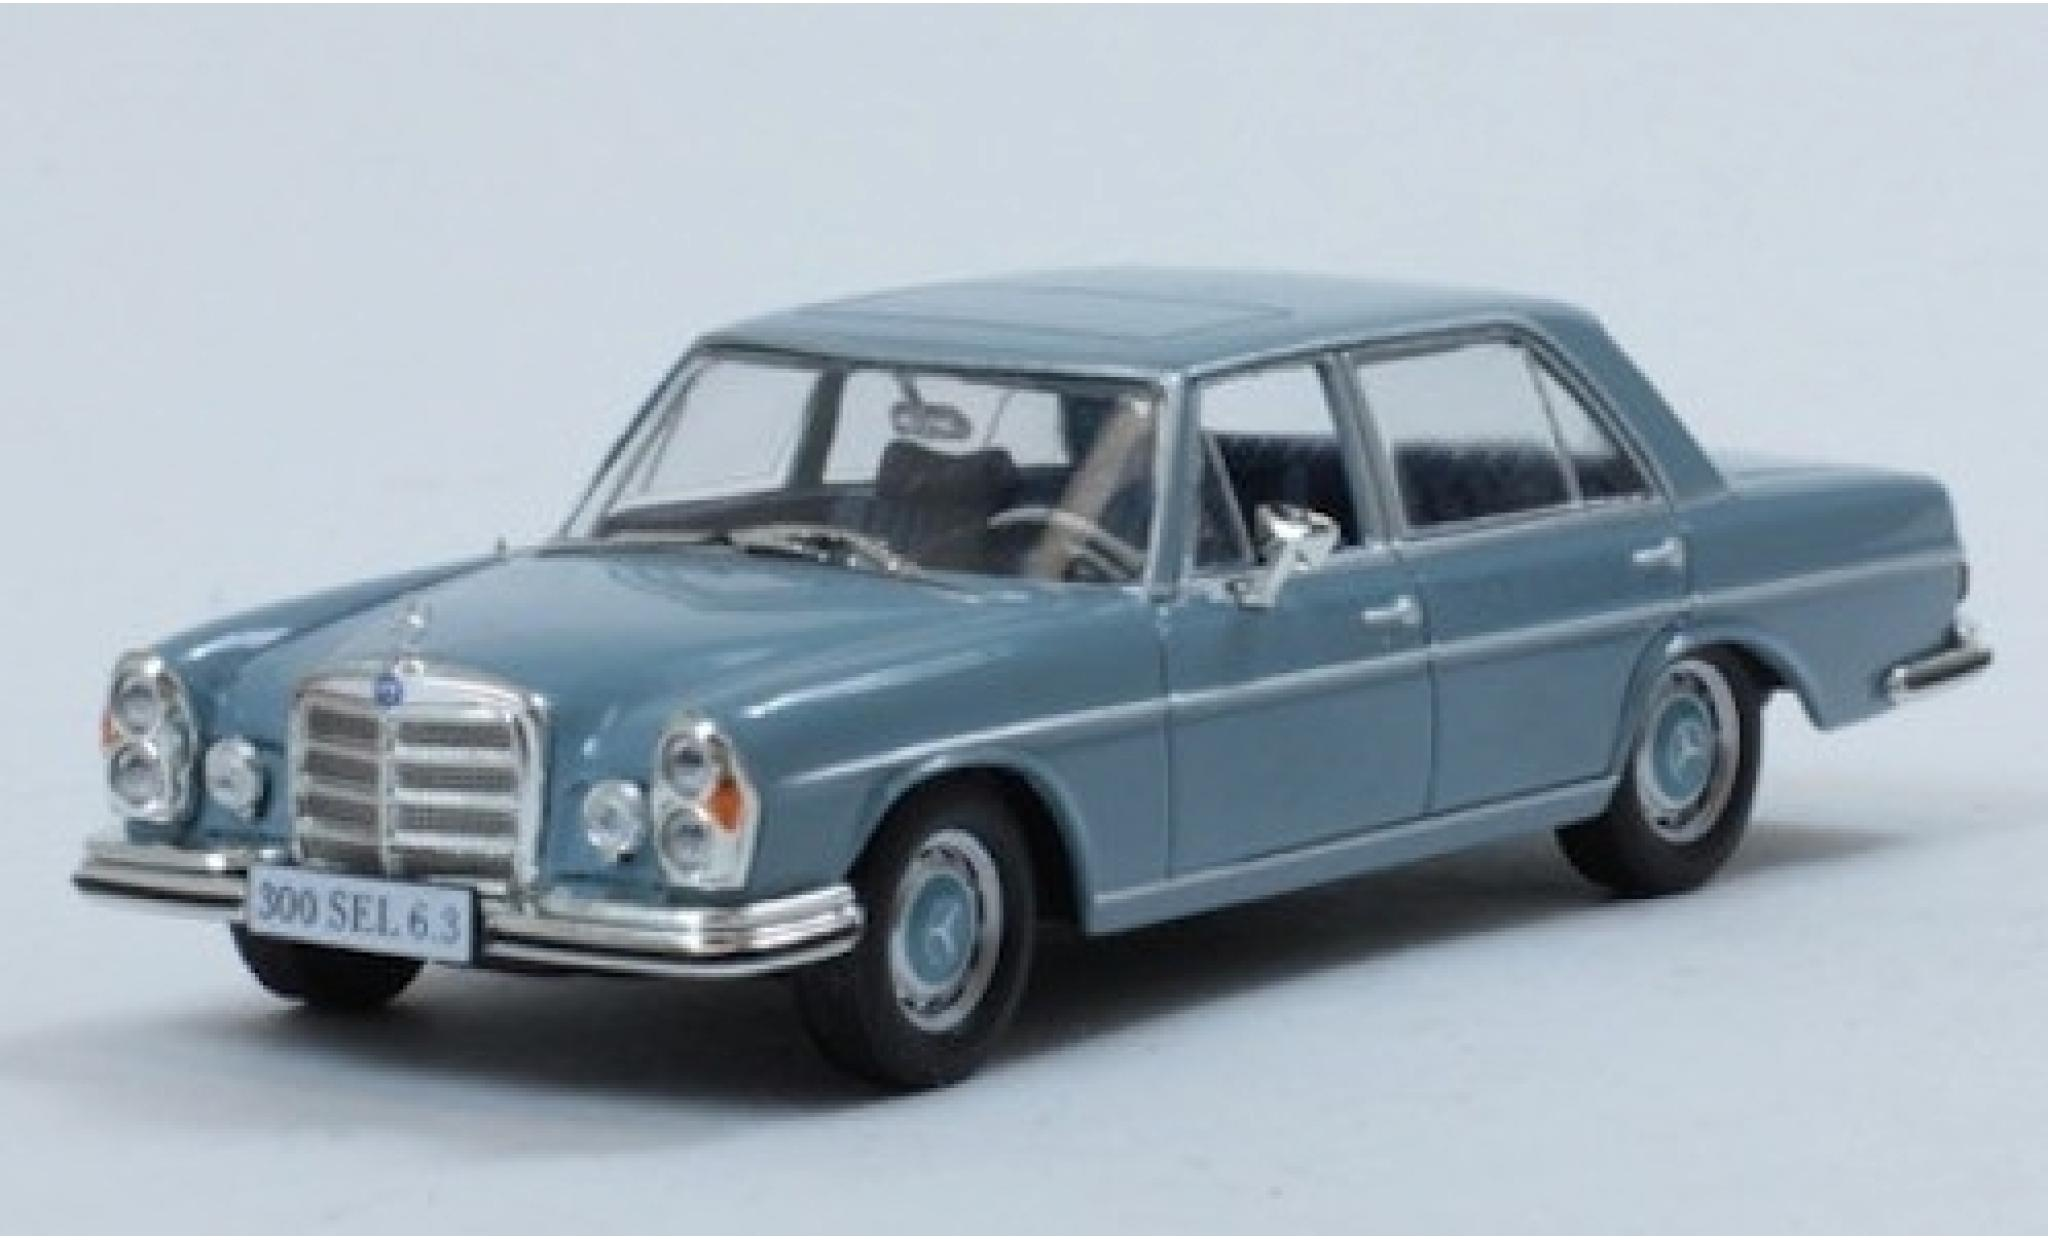 Mercedes 300 1/43 SpecialC 115 SEL 6.3 bleue 1969 ohne Vitrine